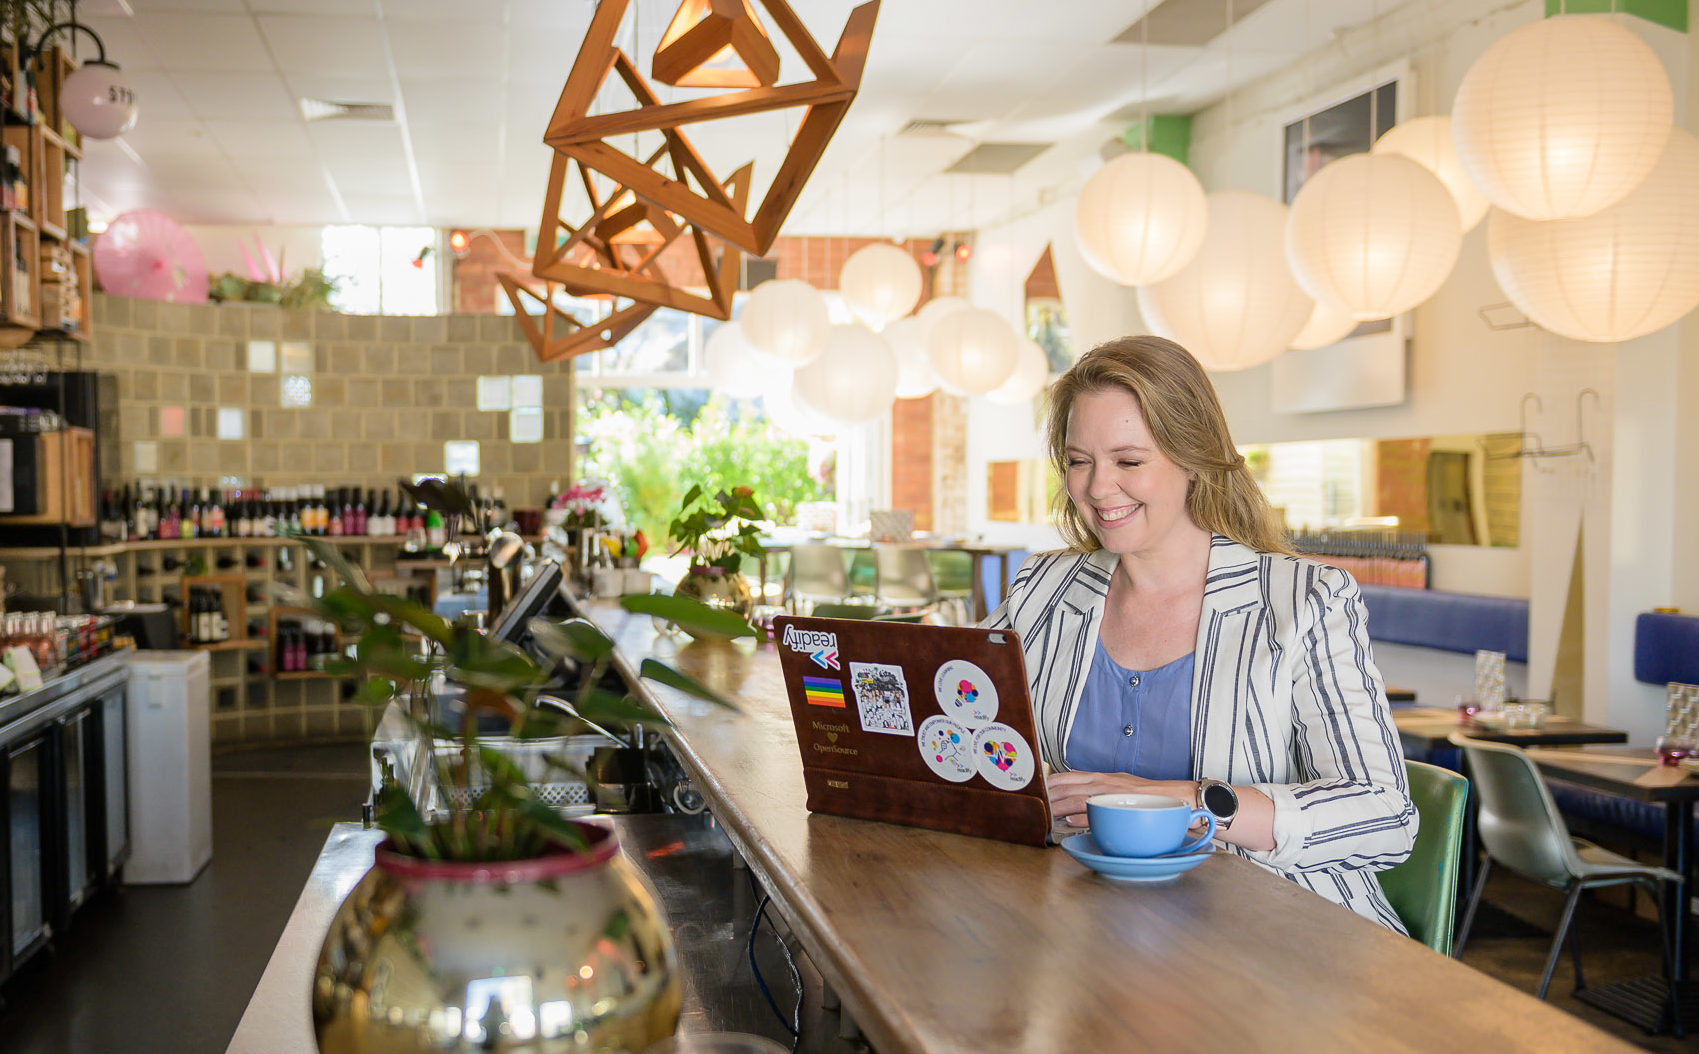 Picture of Donna working at a coffee bar